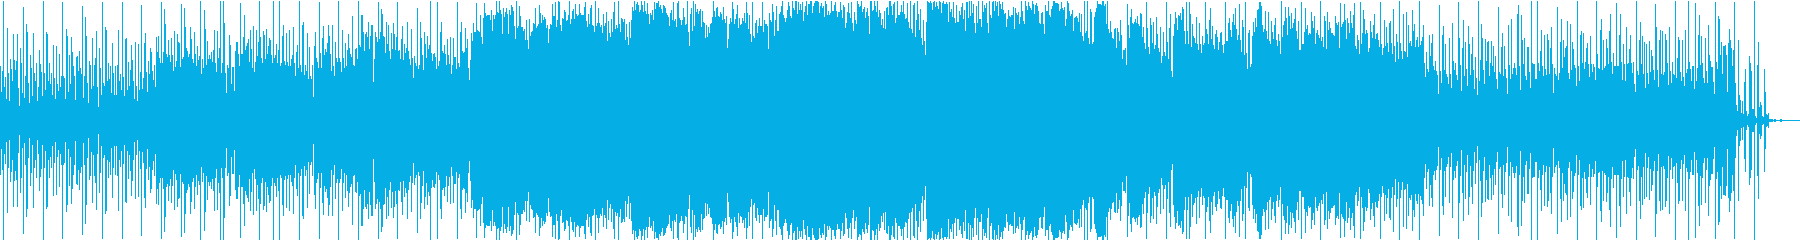 BGM of fluffy image's reproduced waveform